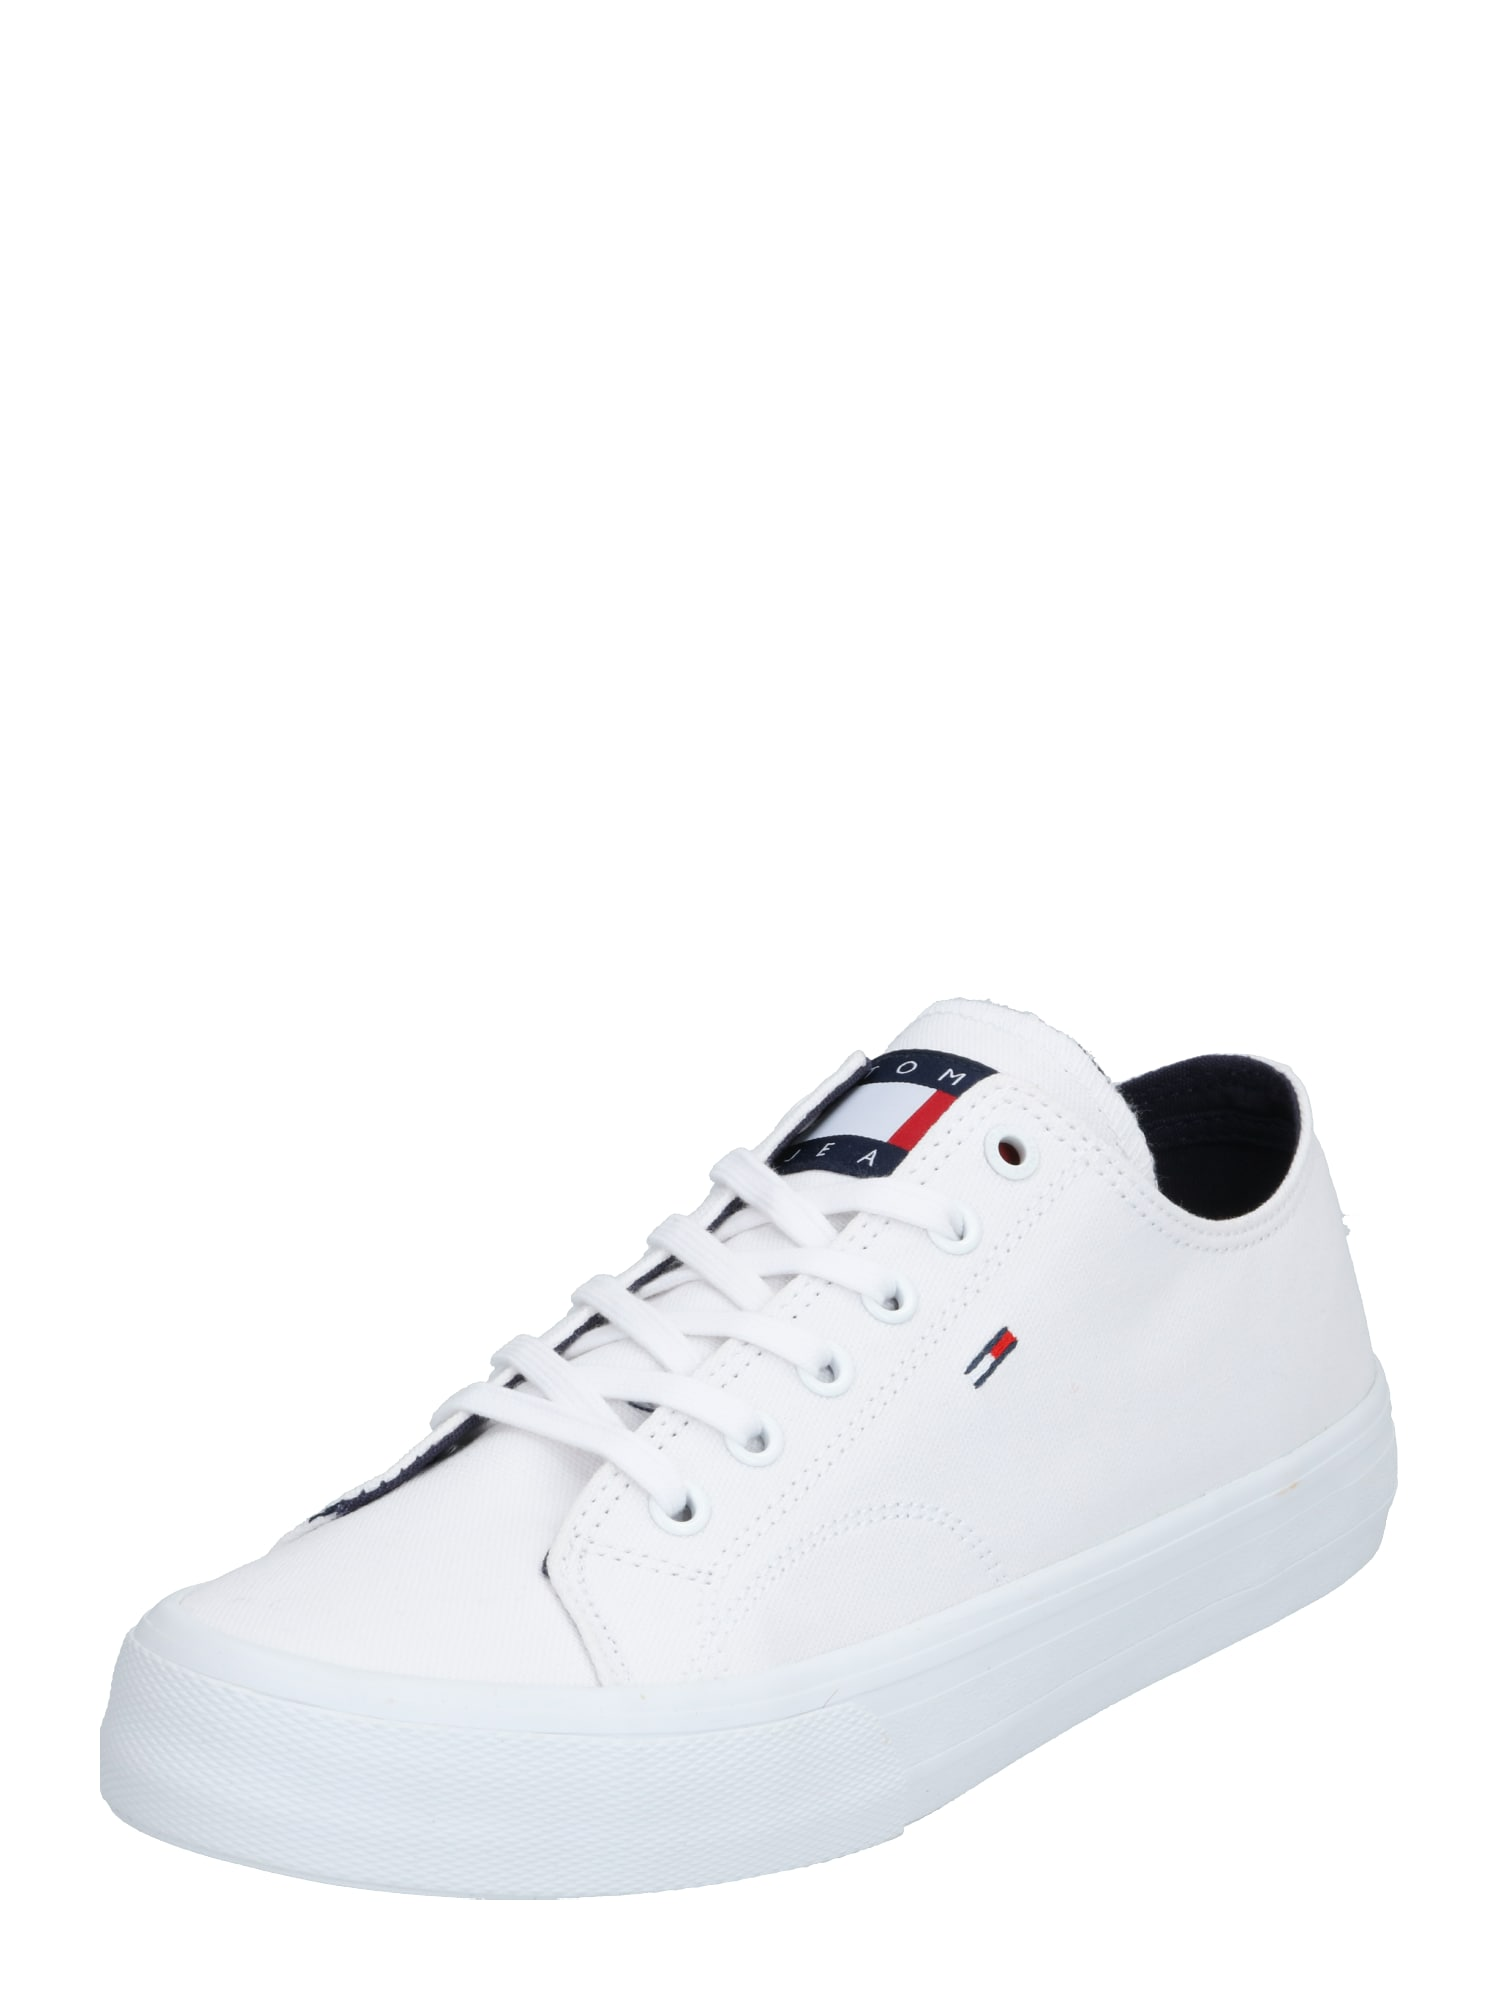 Tommy Jeans Sportbačiai be auliuko 'LONG LACE UP VULC' balta